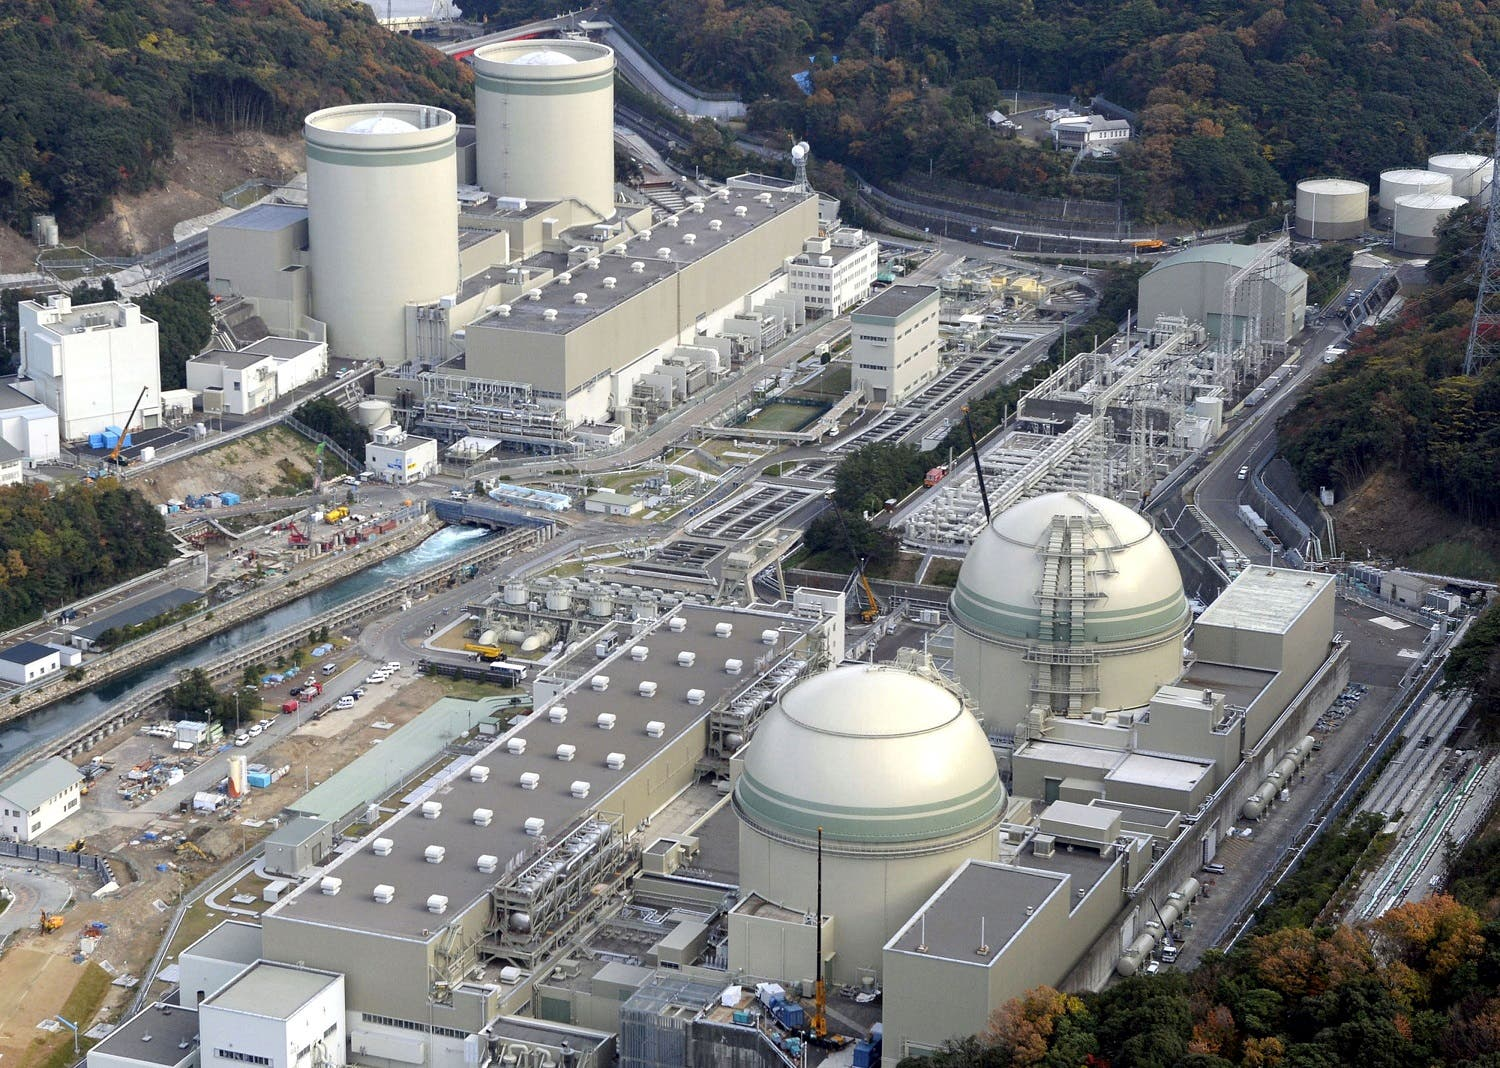 An aerial view shows No. 4 (front L), No. 3 (front R), No. 2 (rear L) and No. 1 reactor buildings at Kansai Electric Power Co.'s Takahama nuclear power plant in Takahama town, Fukui prefecture. (Reuters)